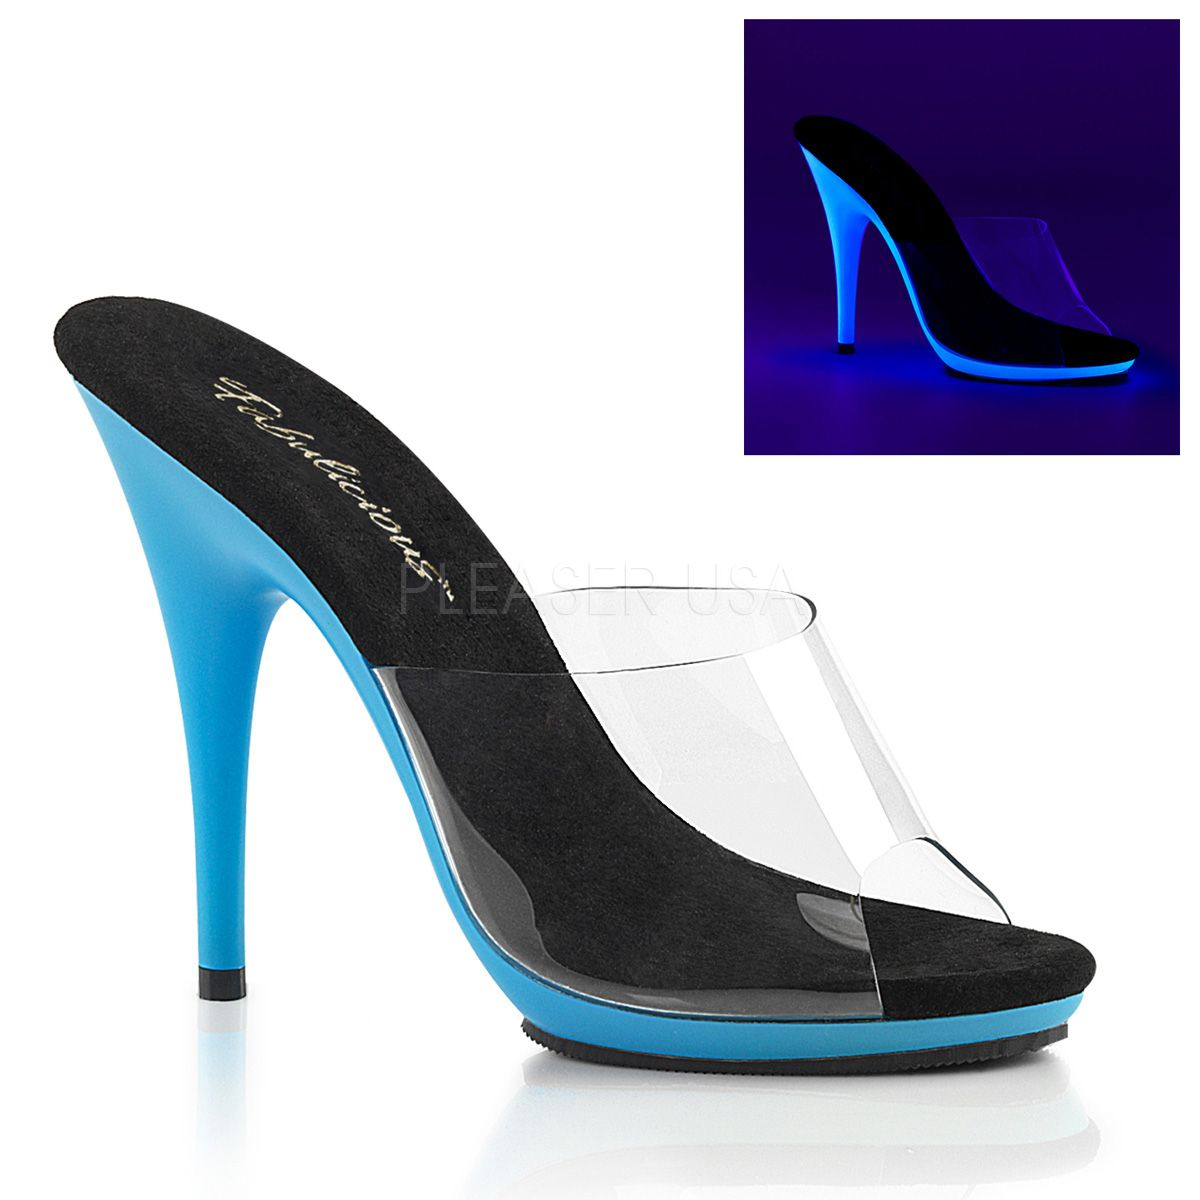 e80f72ddd03 Fabulicious By Pleaser Poise-501UV Clear And Neon Blue – Hot For ...